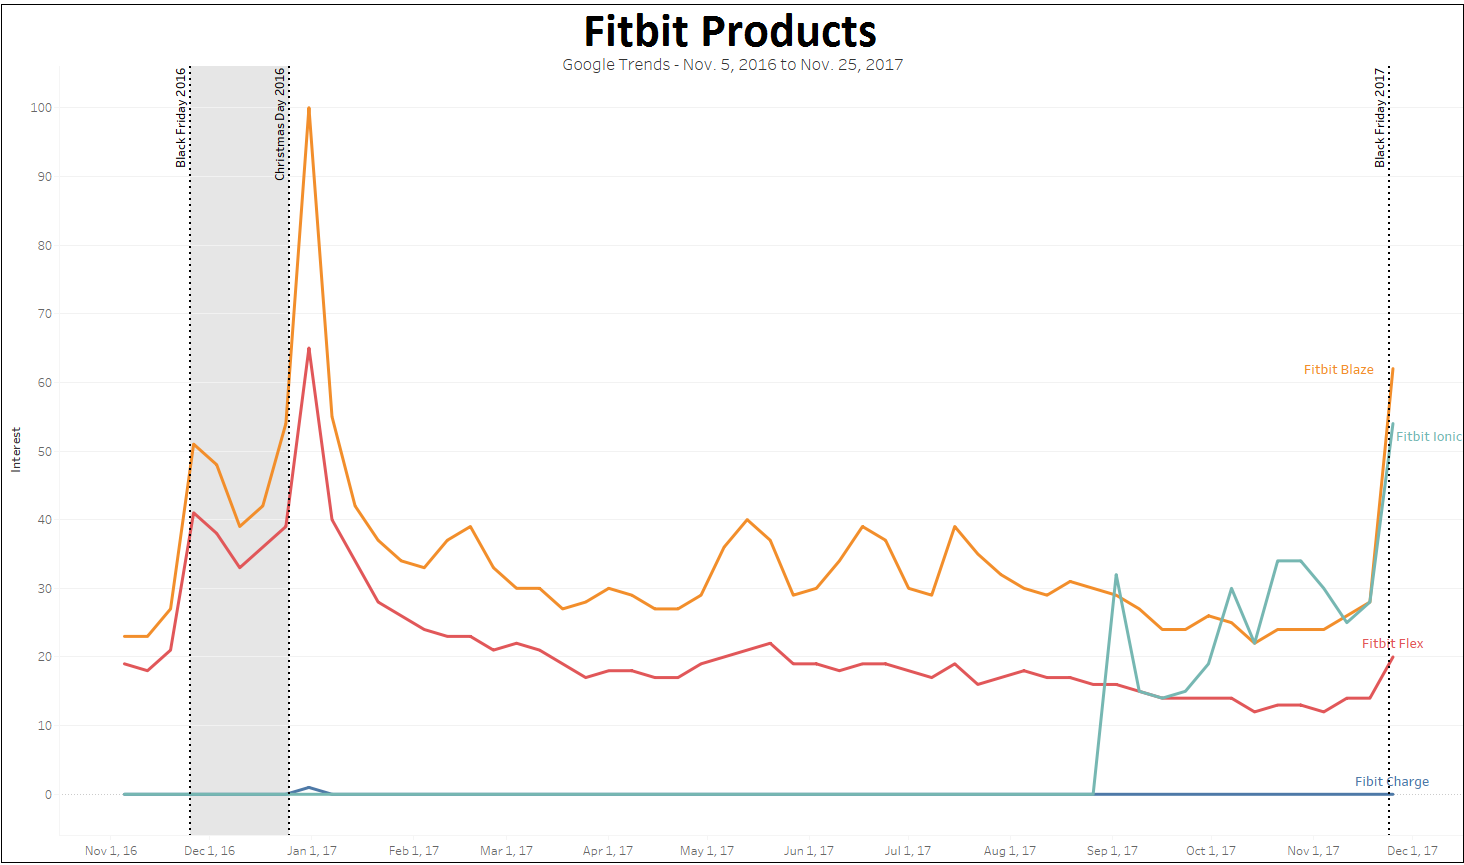 While the Ionic made a splash, there is a clear decline in the search popularity for Fitbit's major products since last winter's peak.png